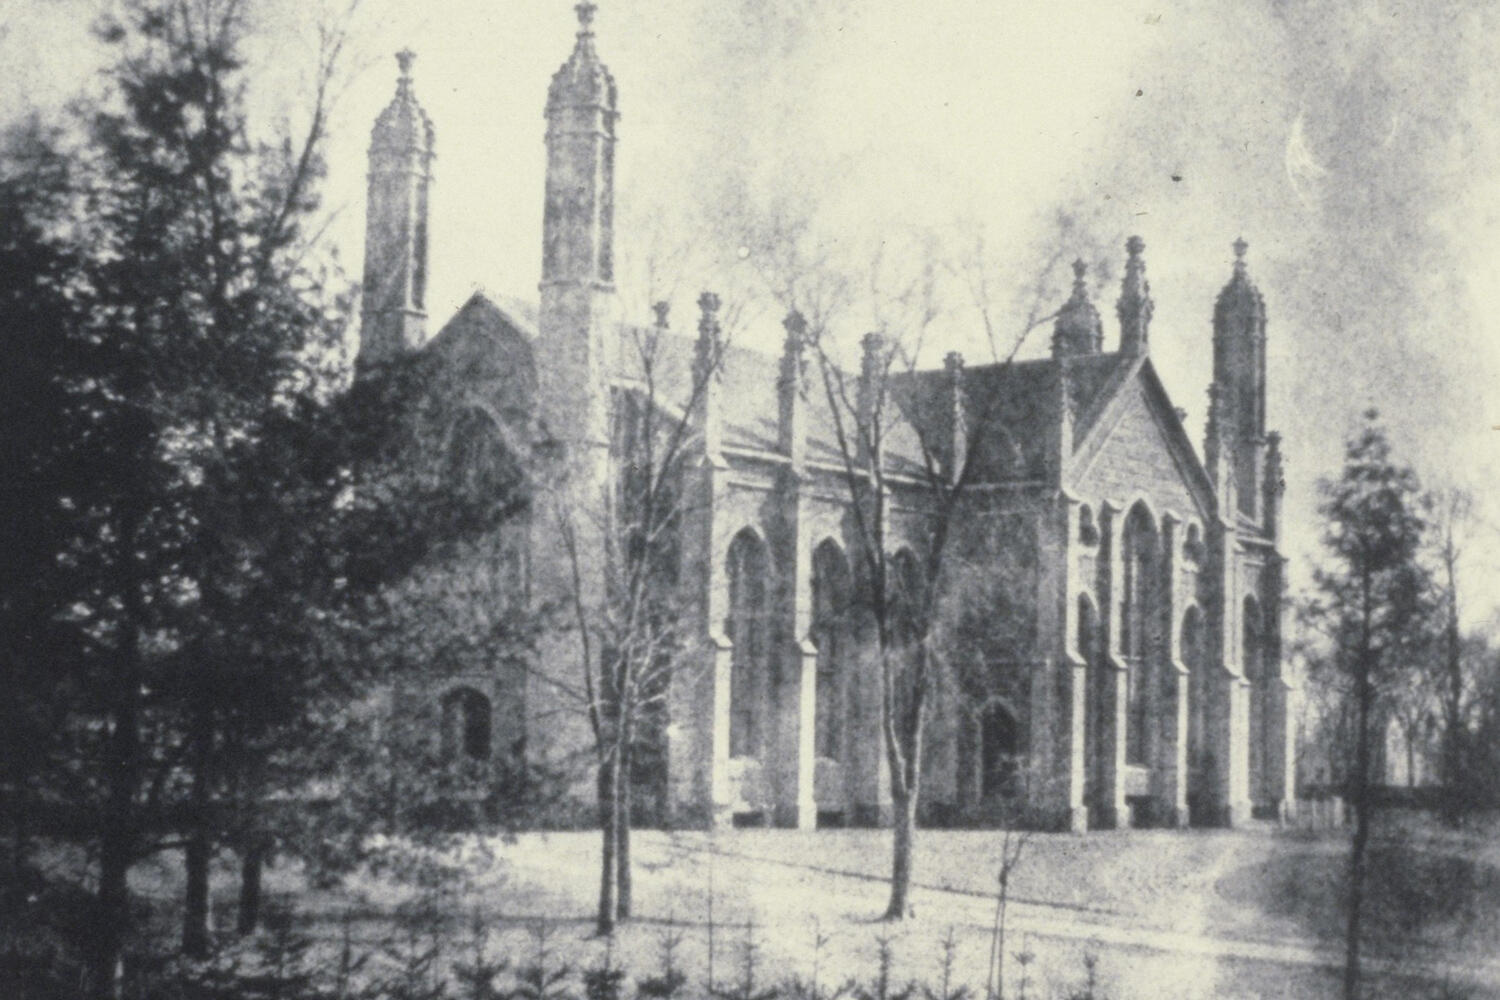 A black-and-white early photograph of Gore Hall, a large Gothic structure with four corner turrets, with trees in the foreground.